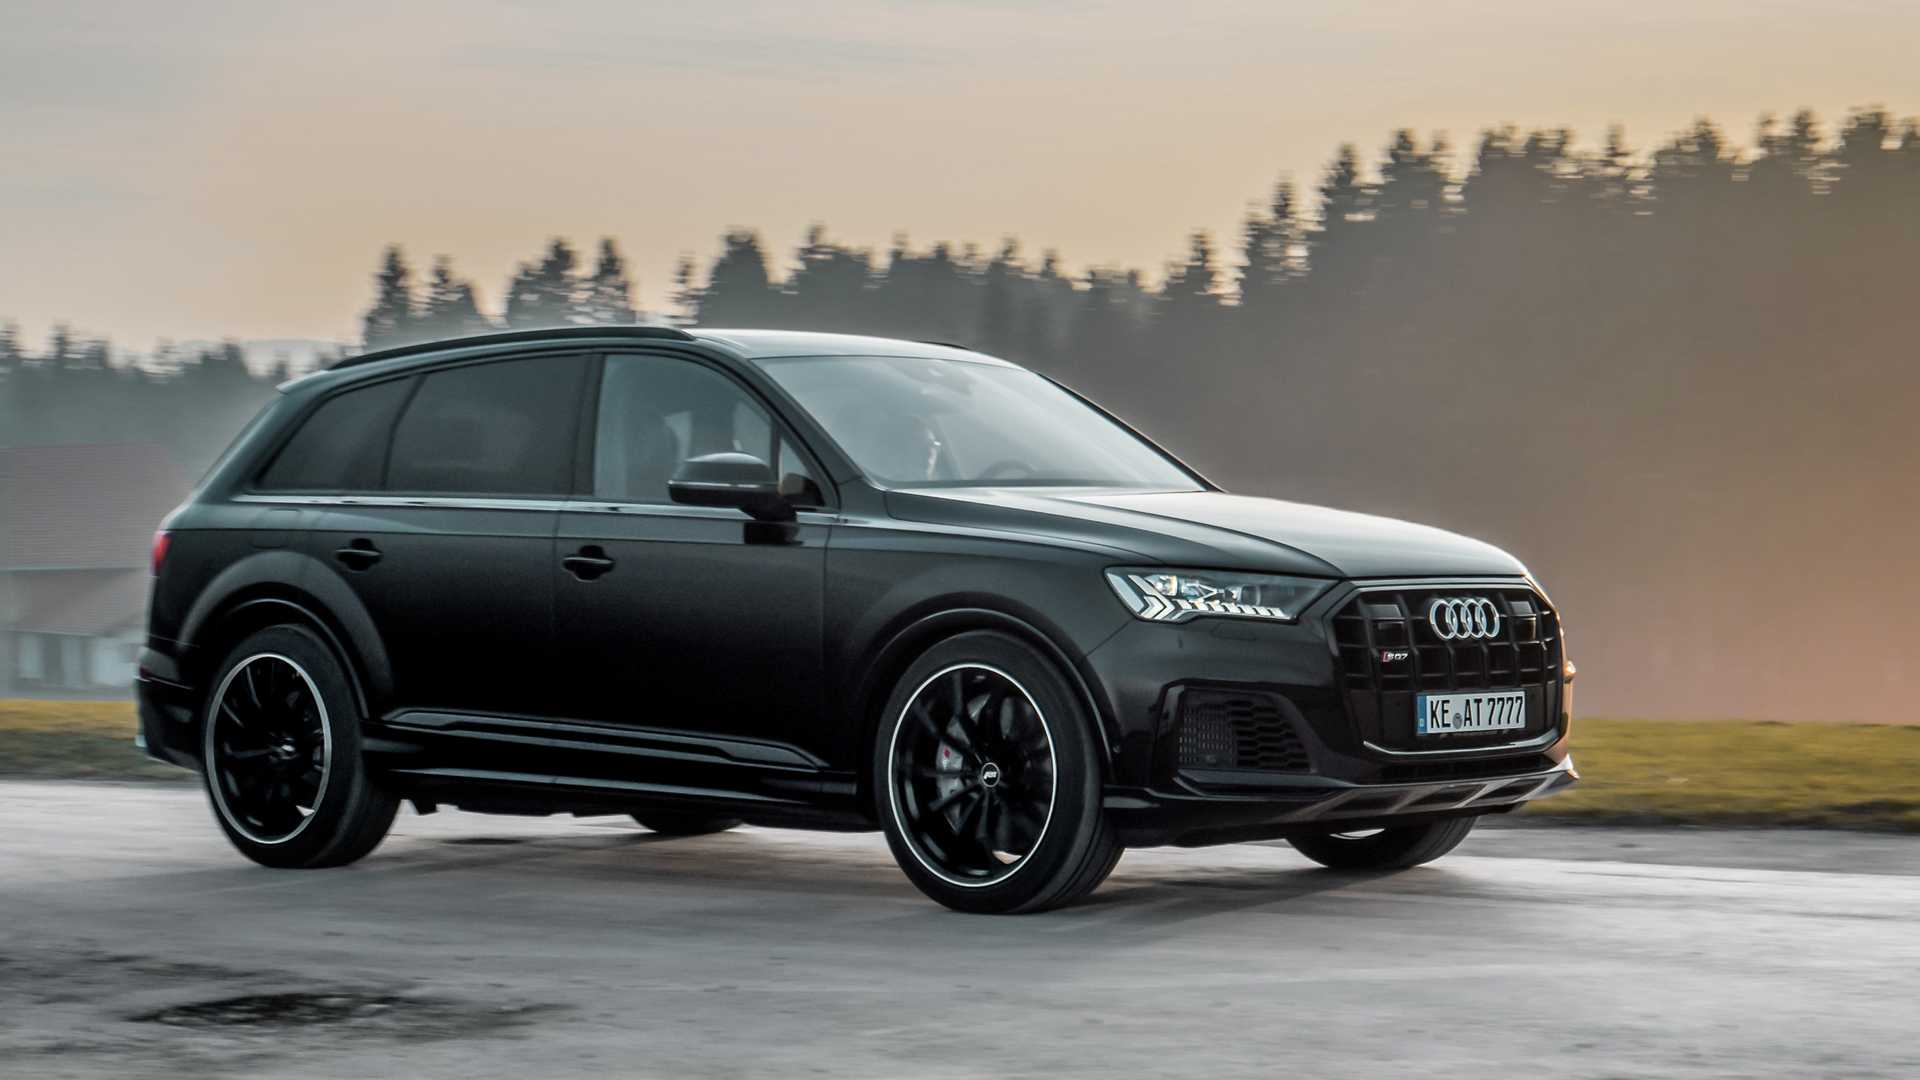 Audi Sq7 Gets More Power New Wheels From Abt